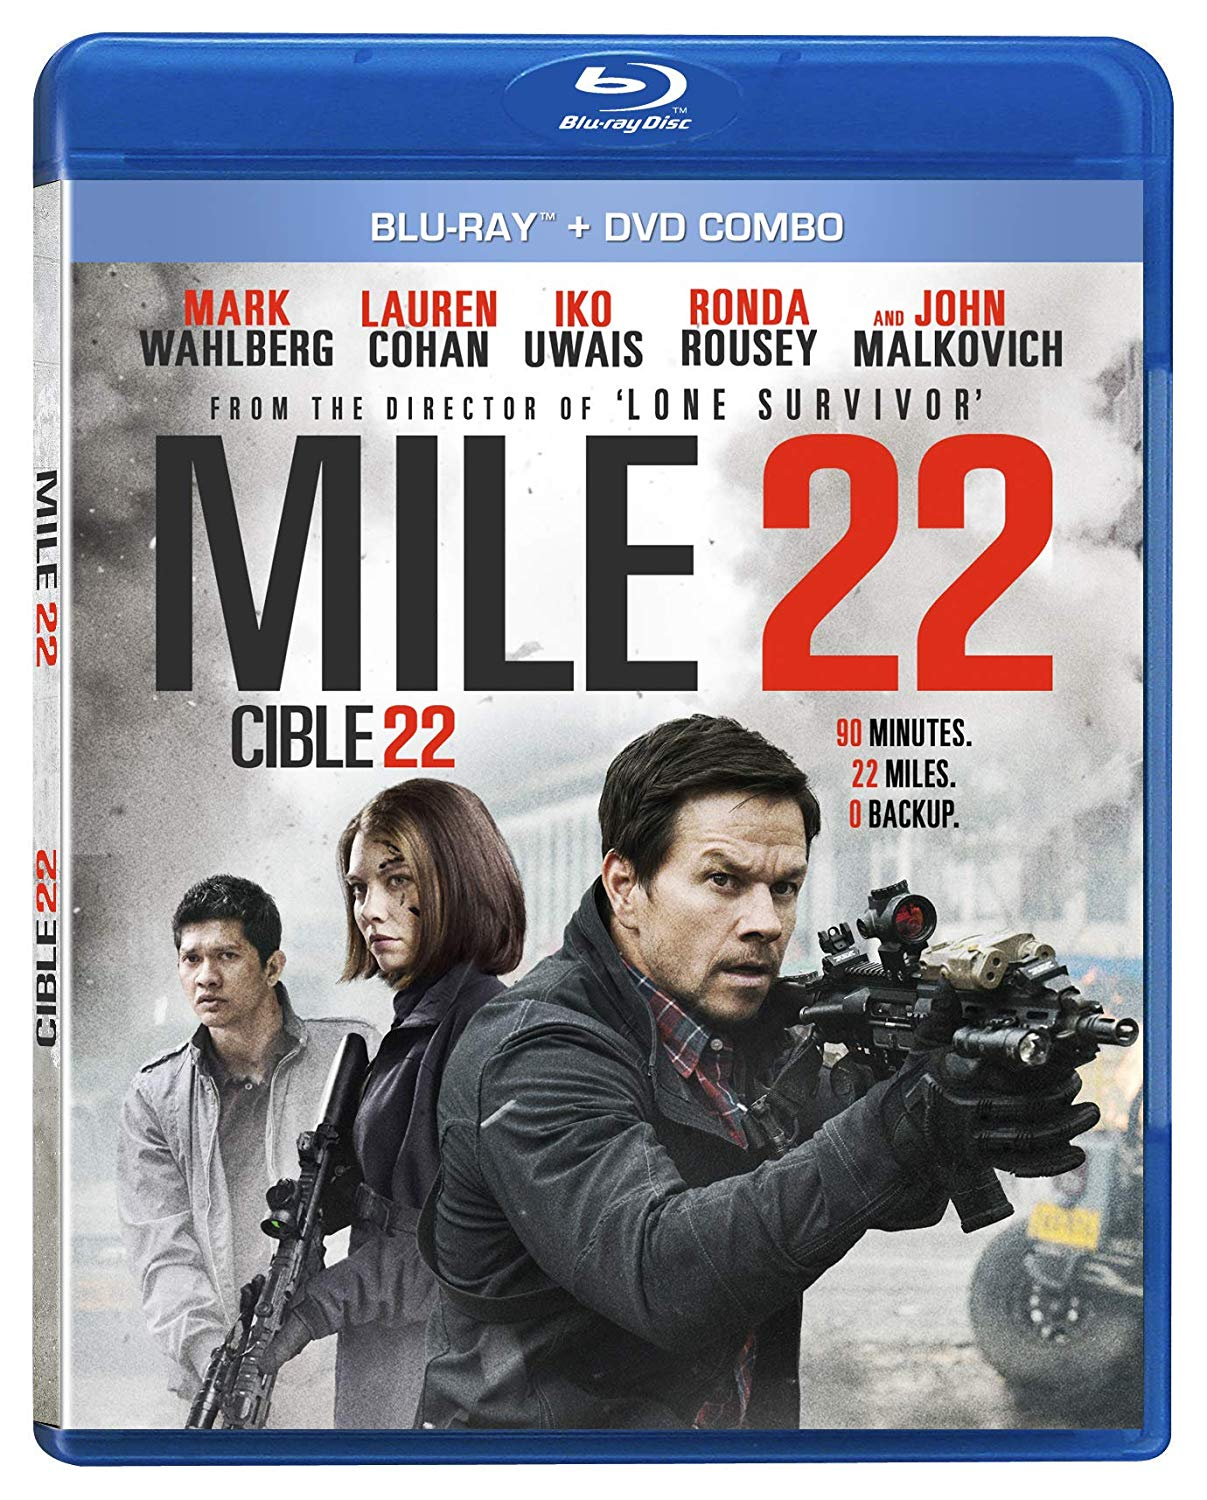 Blu-ray Review: Mile 22   One Movie, Our Views